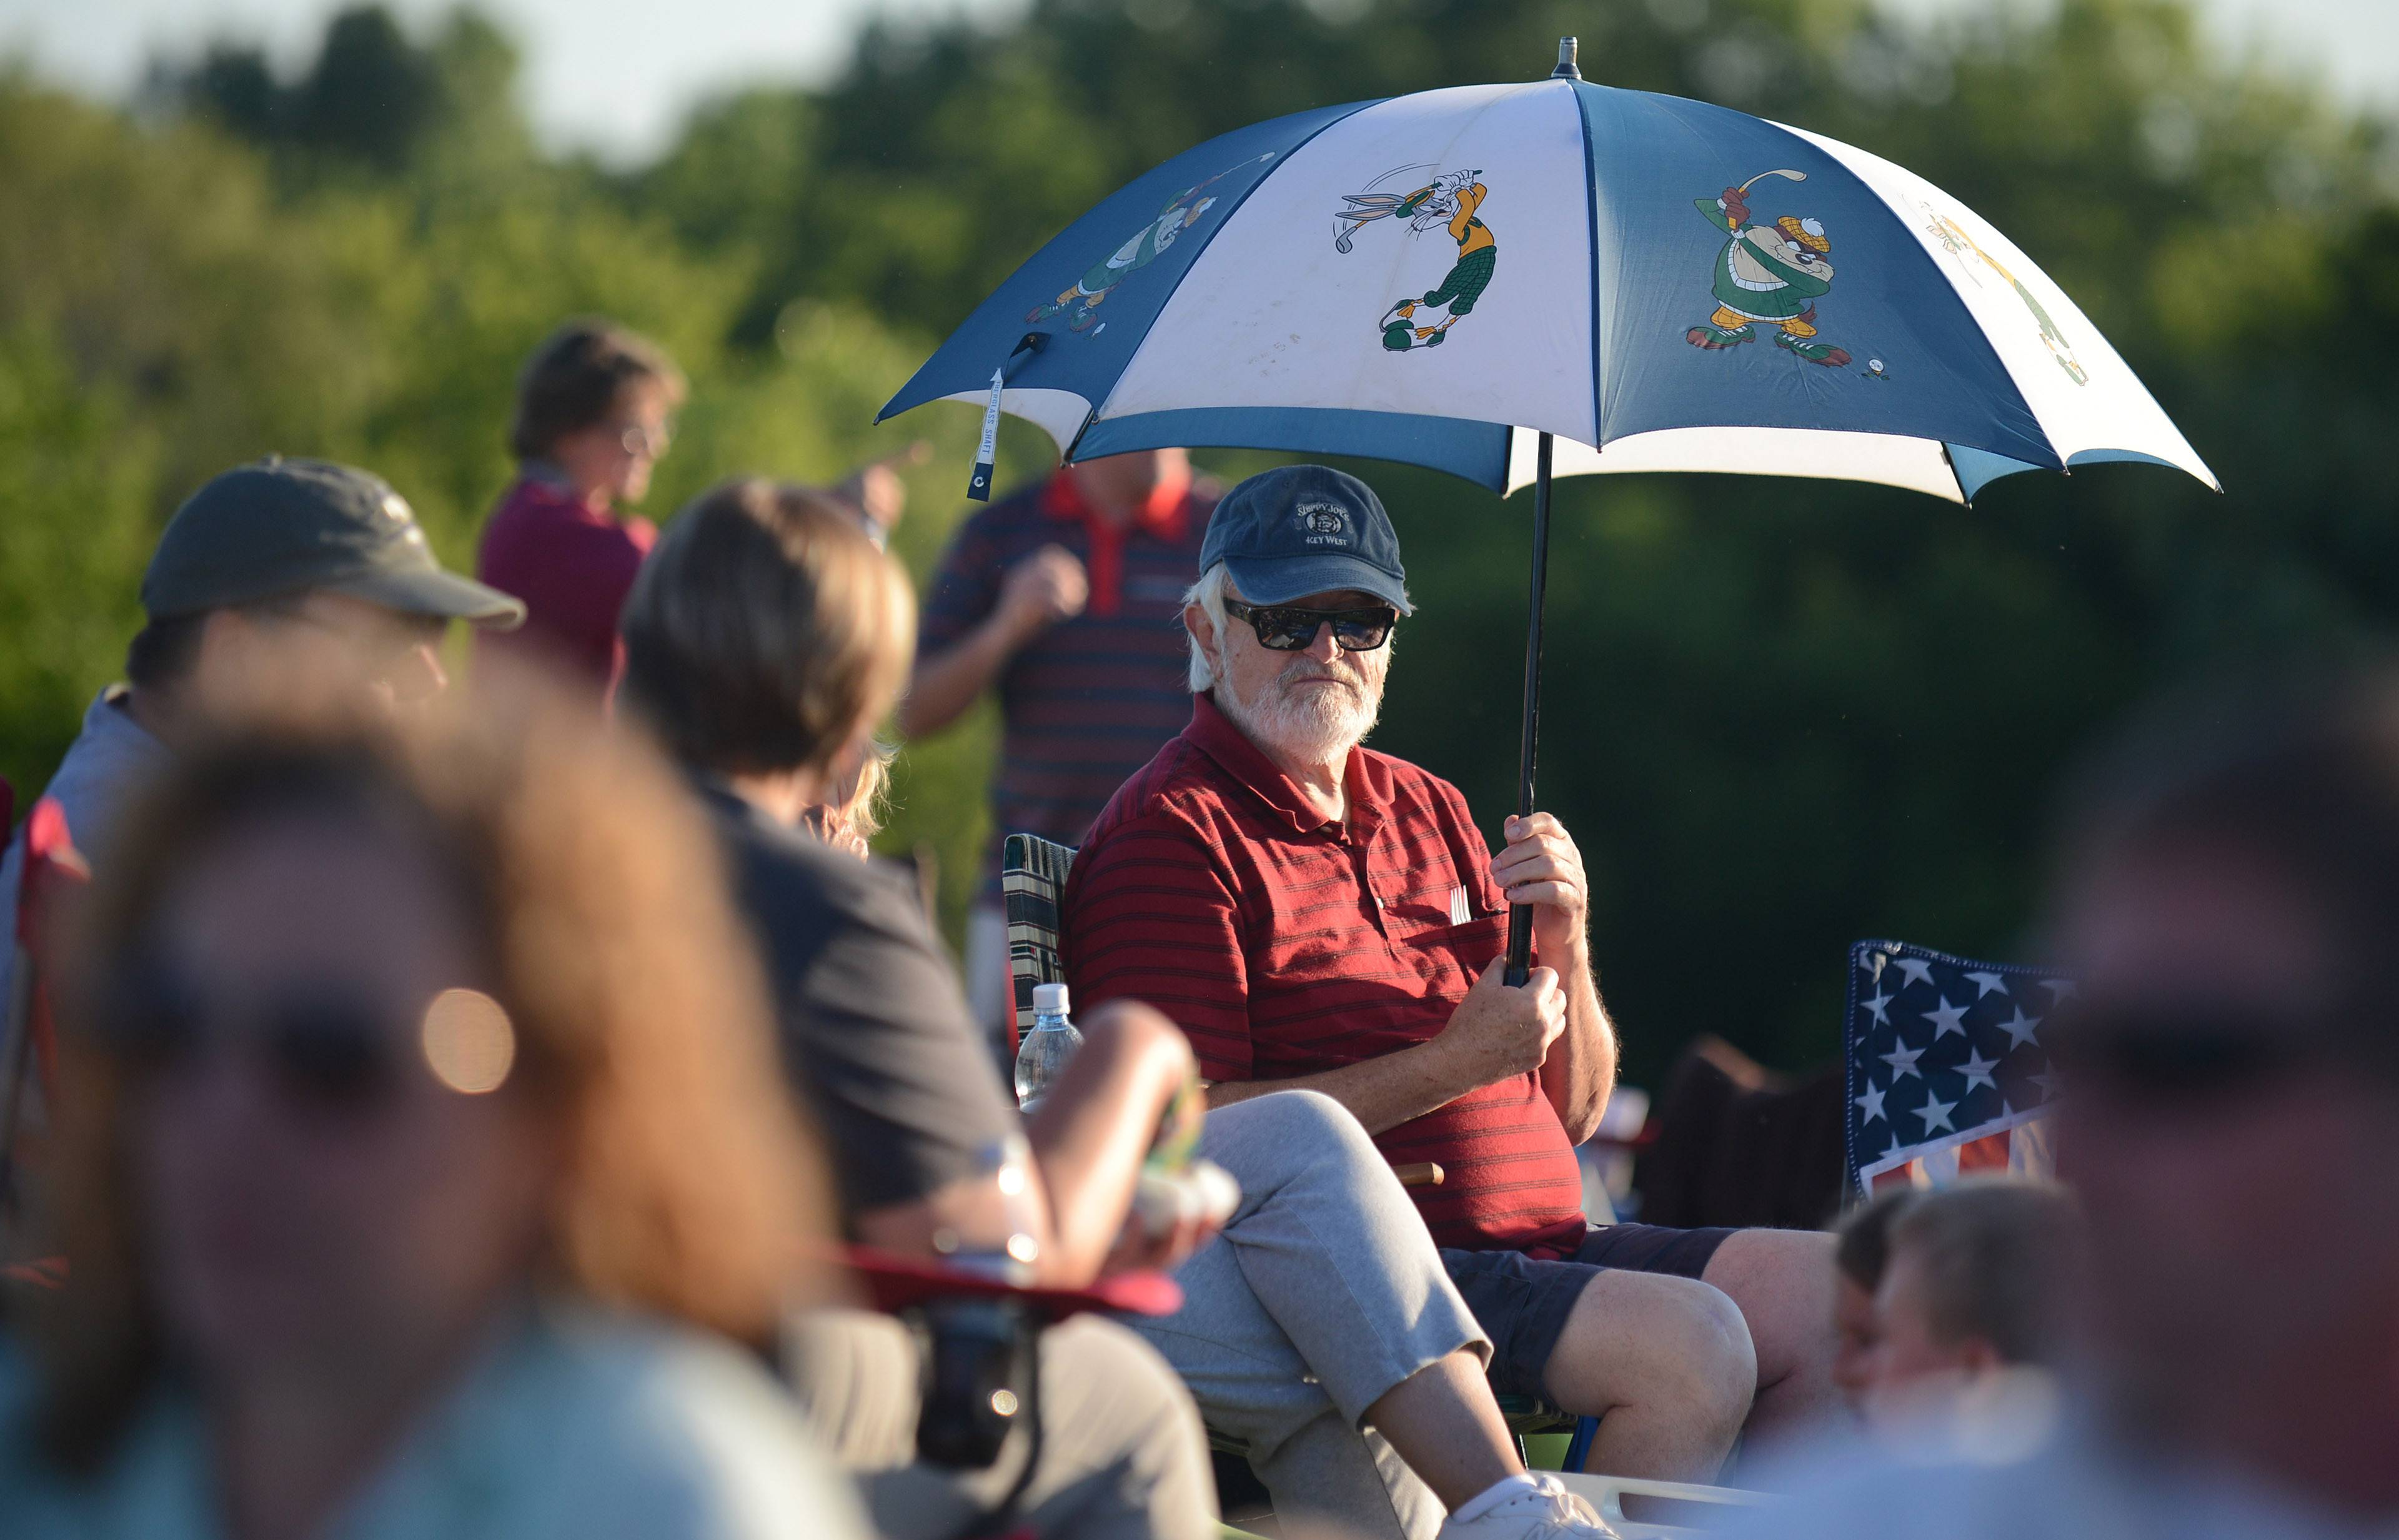 Frank Ahern of Niles waits for the concert and fireworks to start Thursday at the Cary Summer Celebration at Lions Park. Ahern came with Kay Cooms of Palatine and her daughter, Amy Arnieri of Cary.